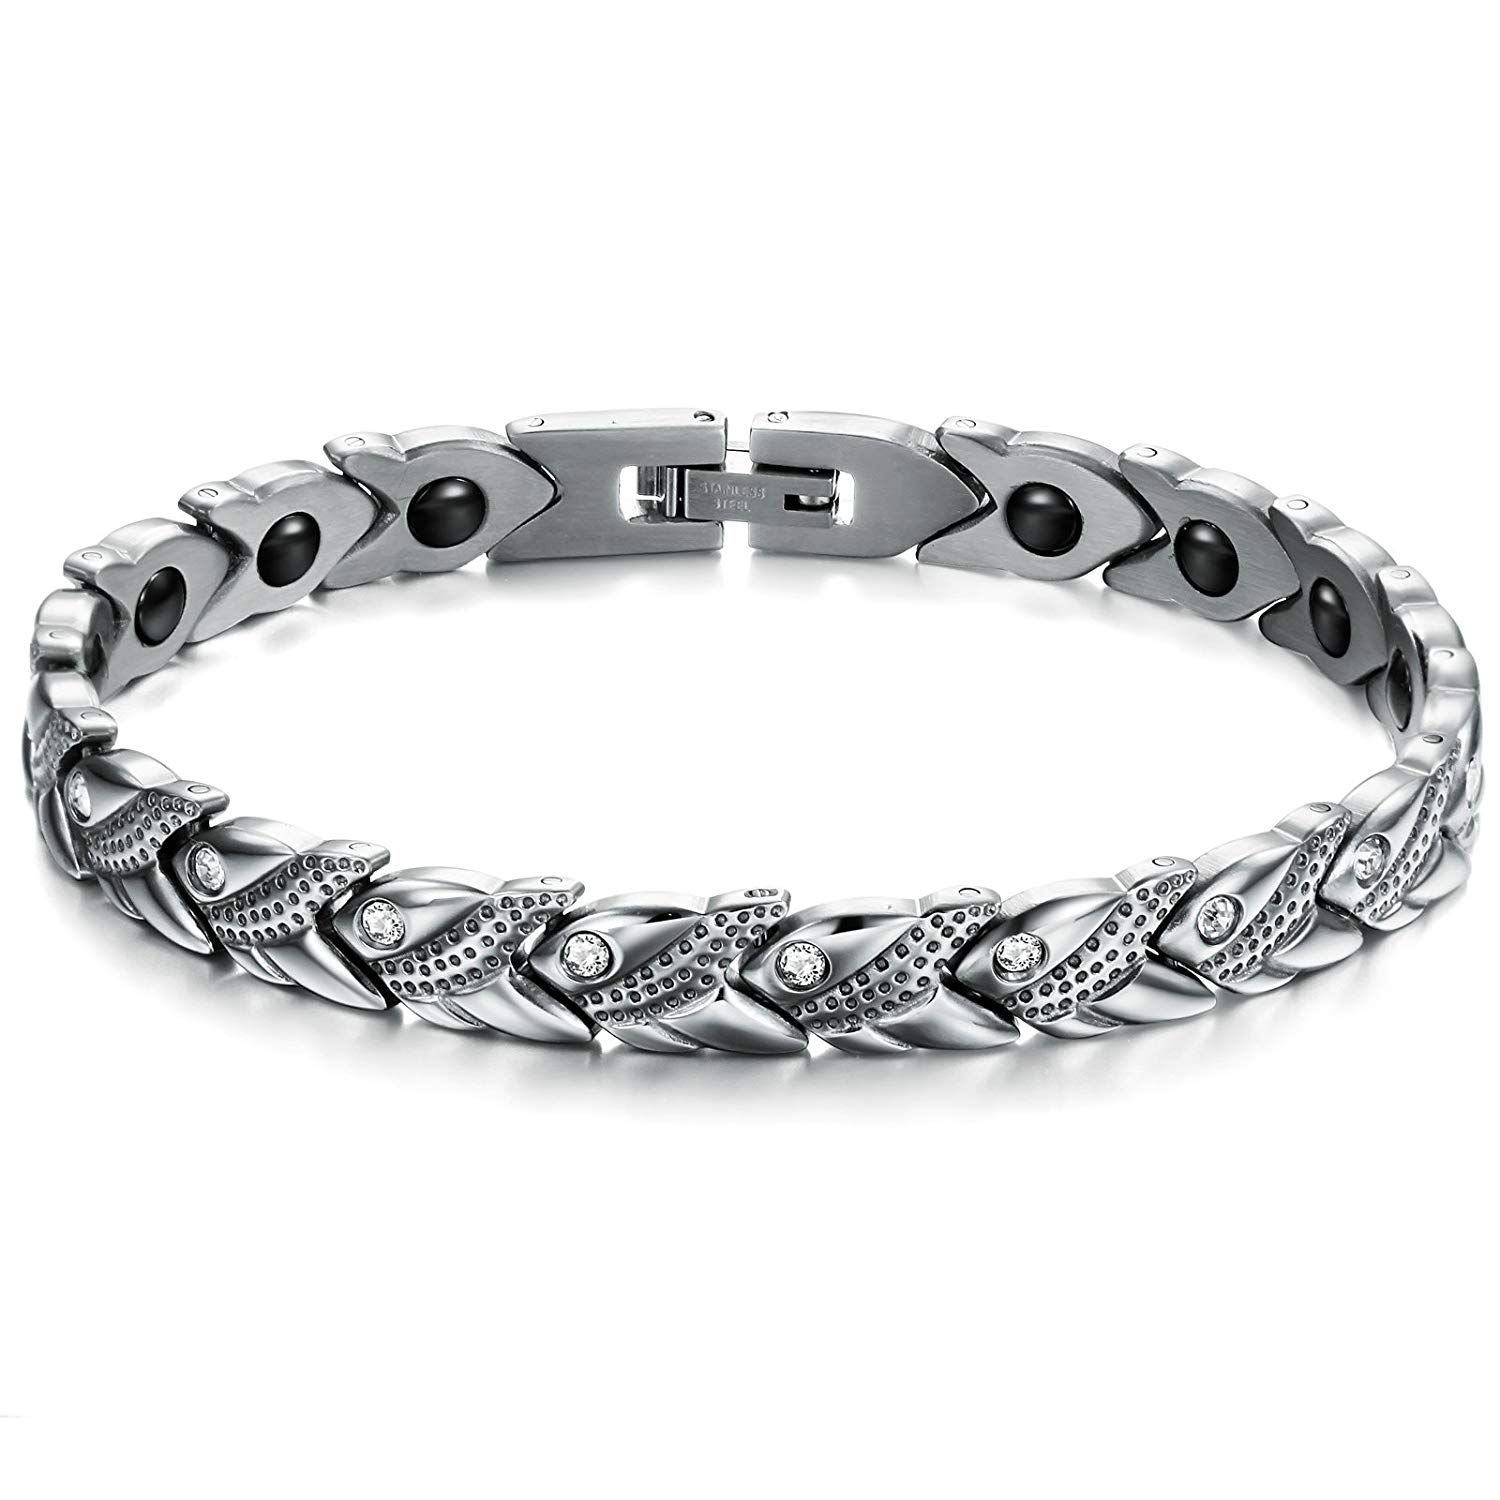 ASTERIA Jewelry Fashion Titanium Stainless Steel Bracelet Bangle for Men Women Simple Korean Style